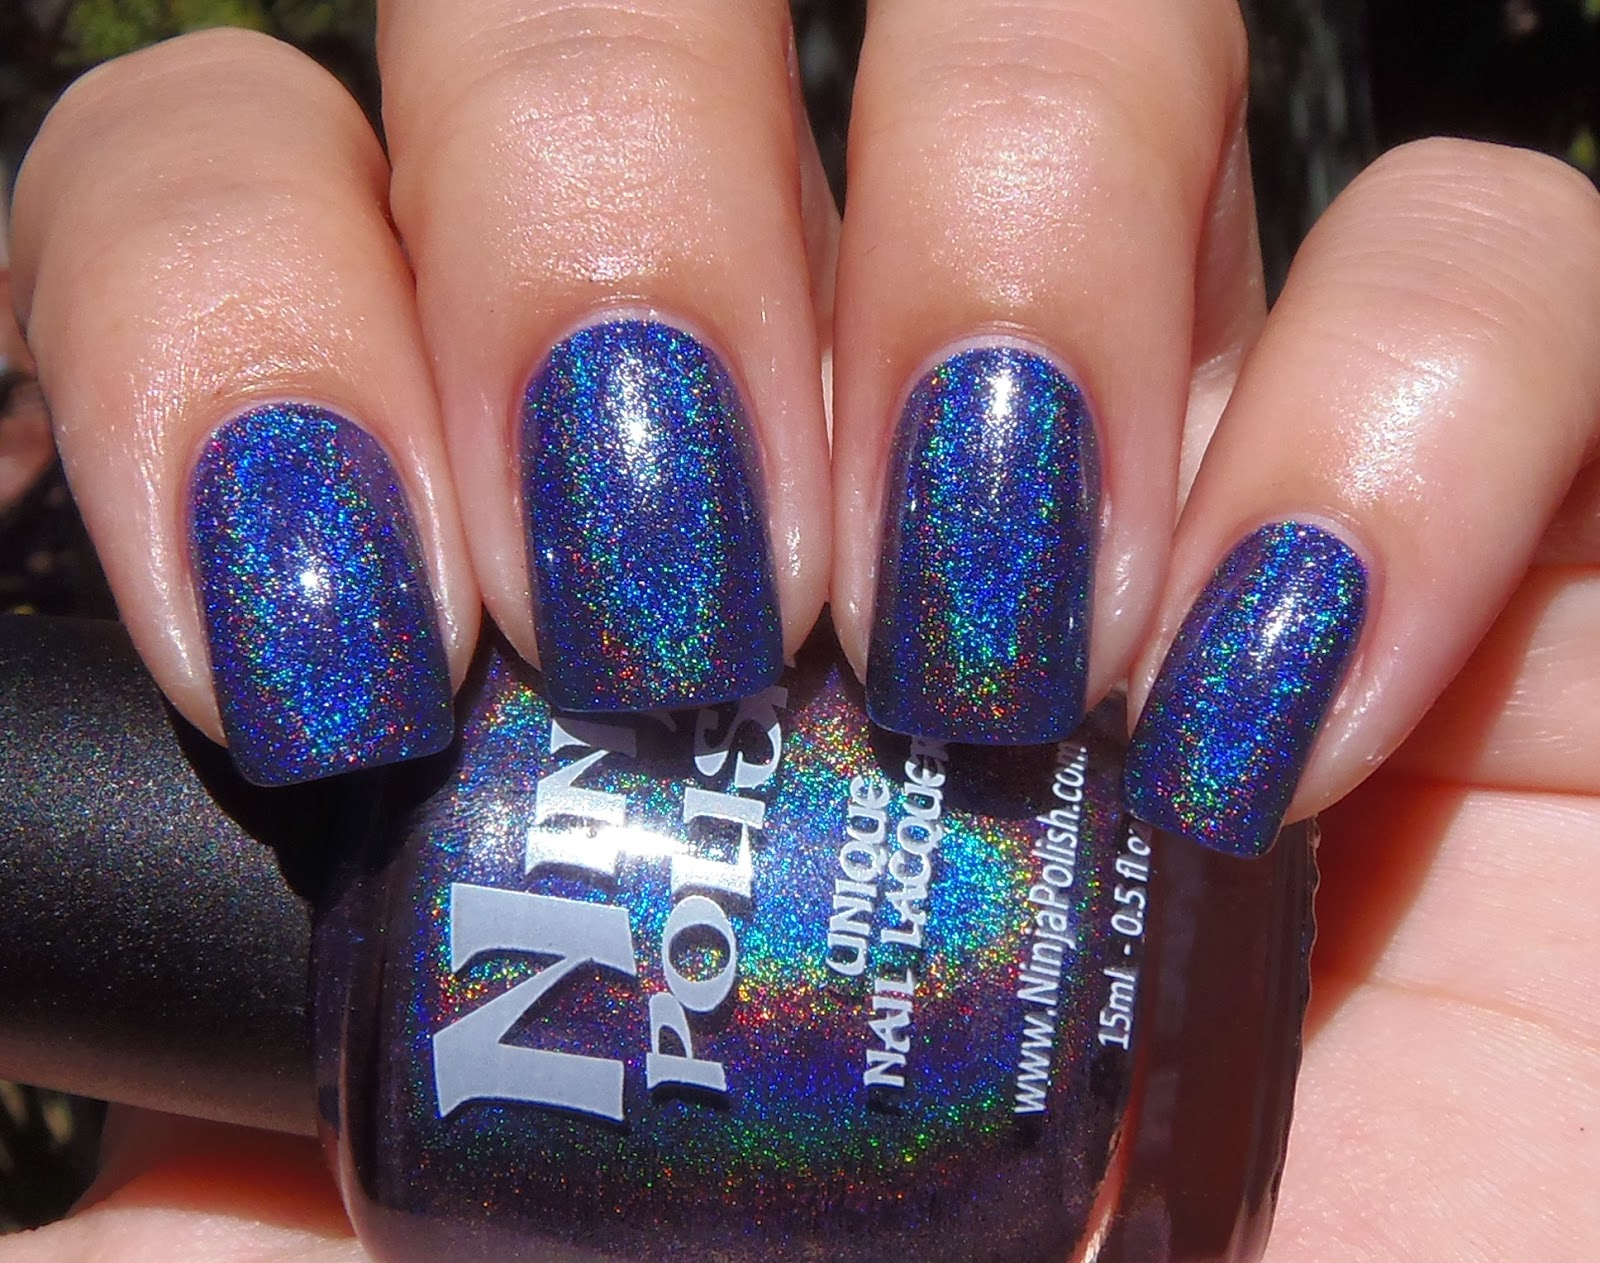 Sparkly Vernis: Ninja Polish Glamorous is a dark blue holographic